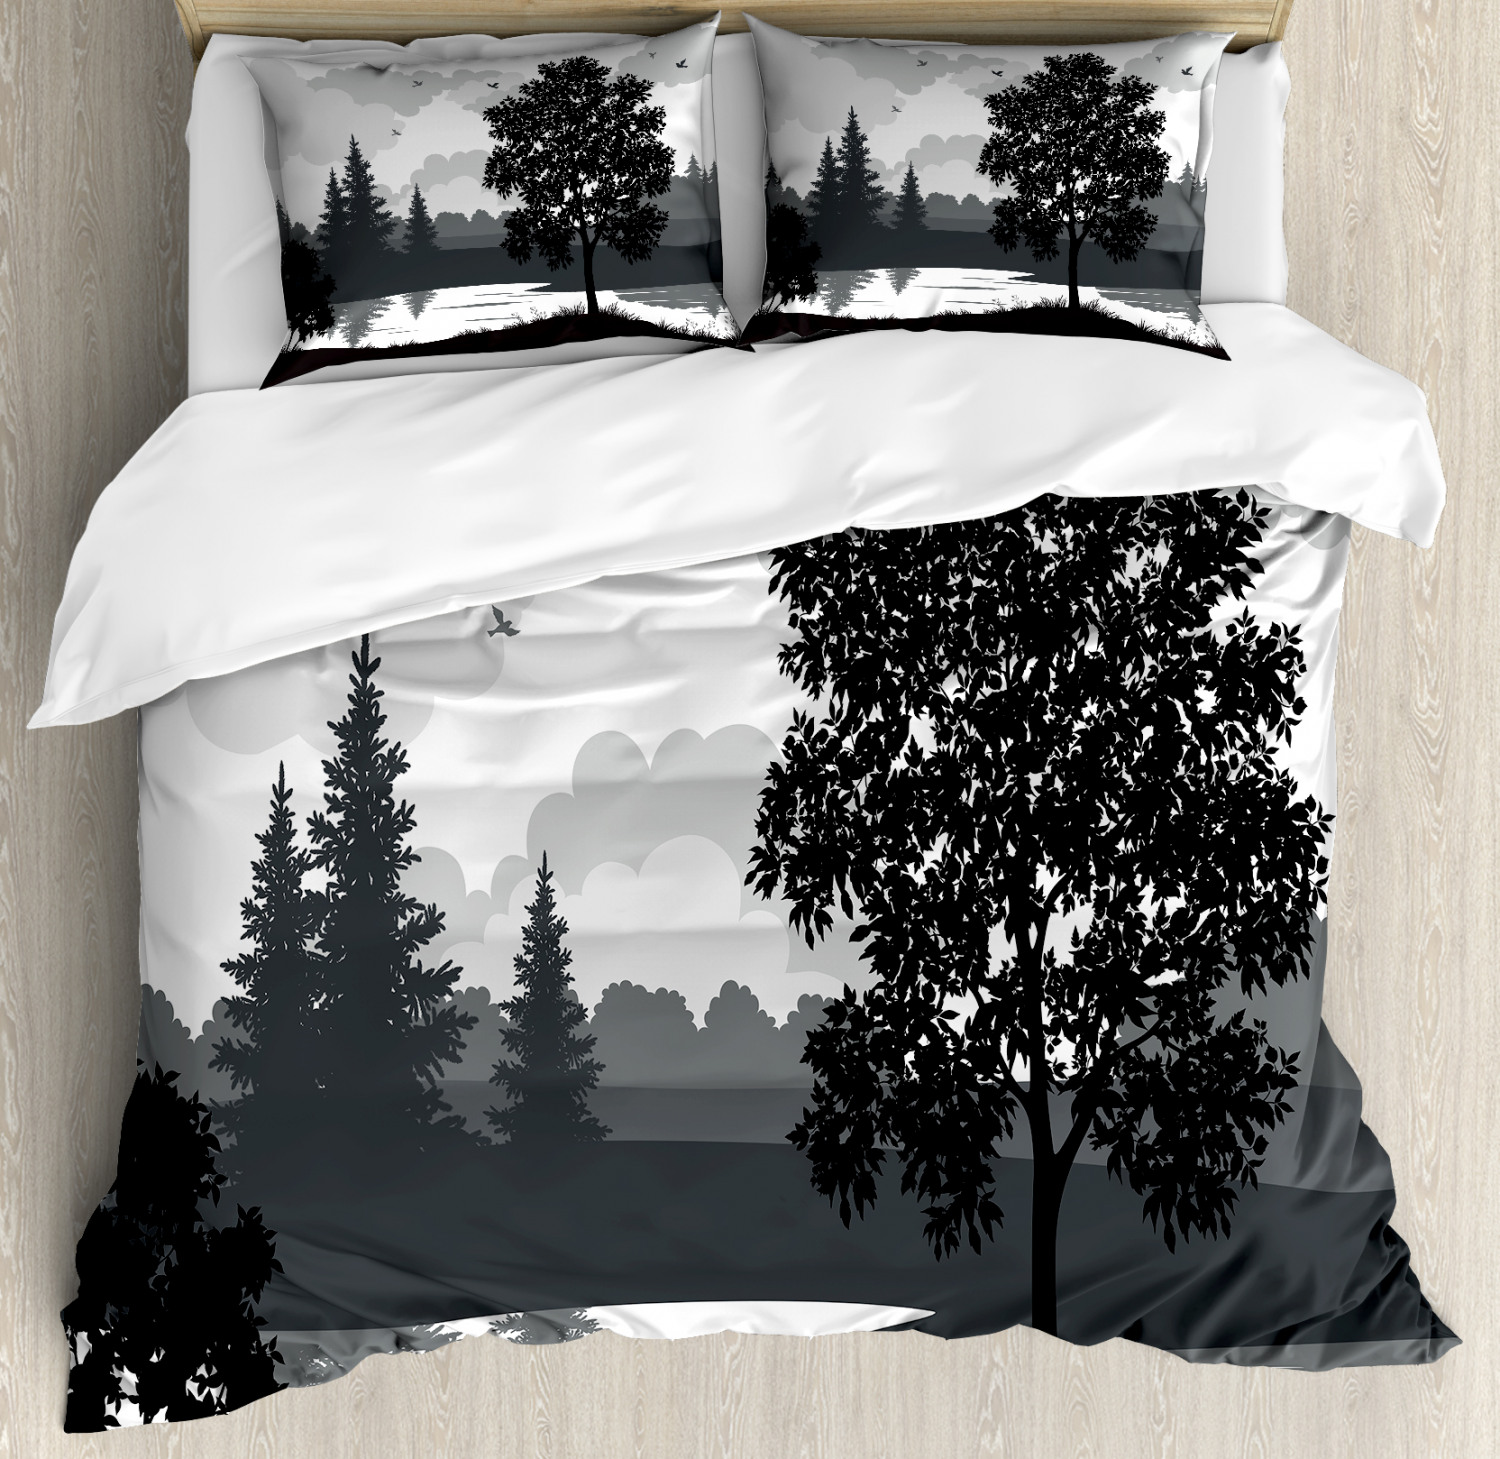 Scenery Duvet Cover Set with Pillow Shams Trees Birds Cloudy Sky Print